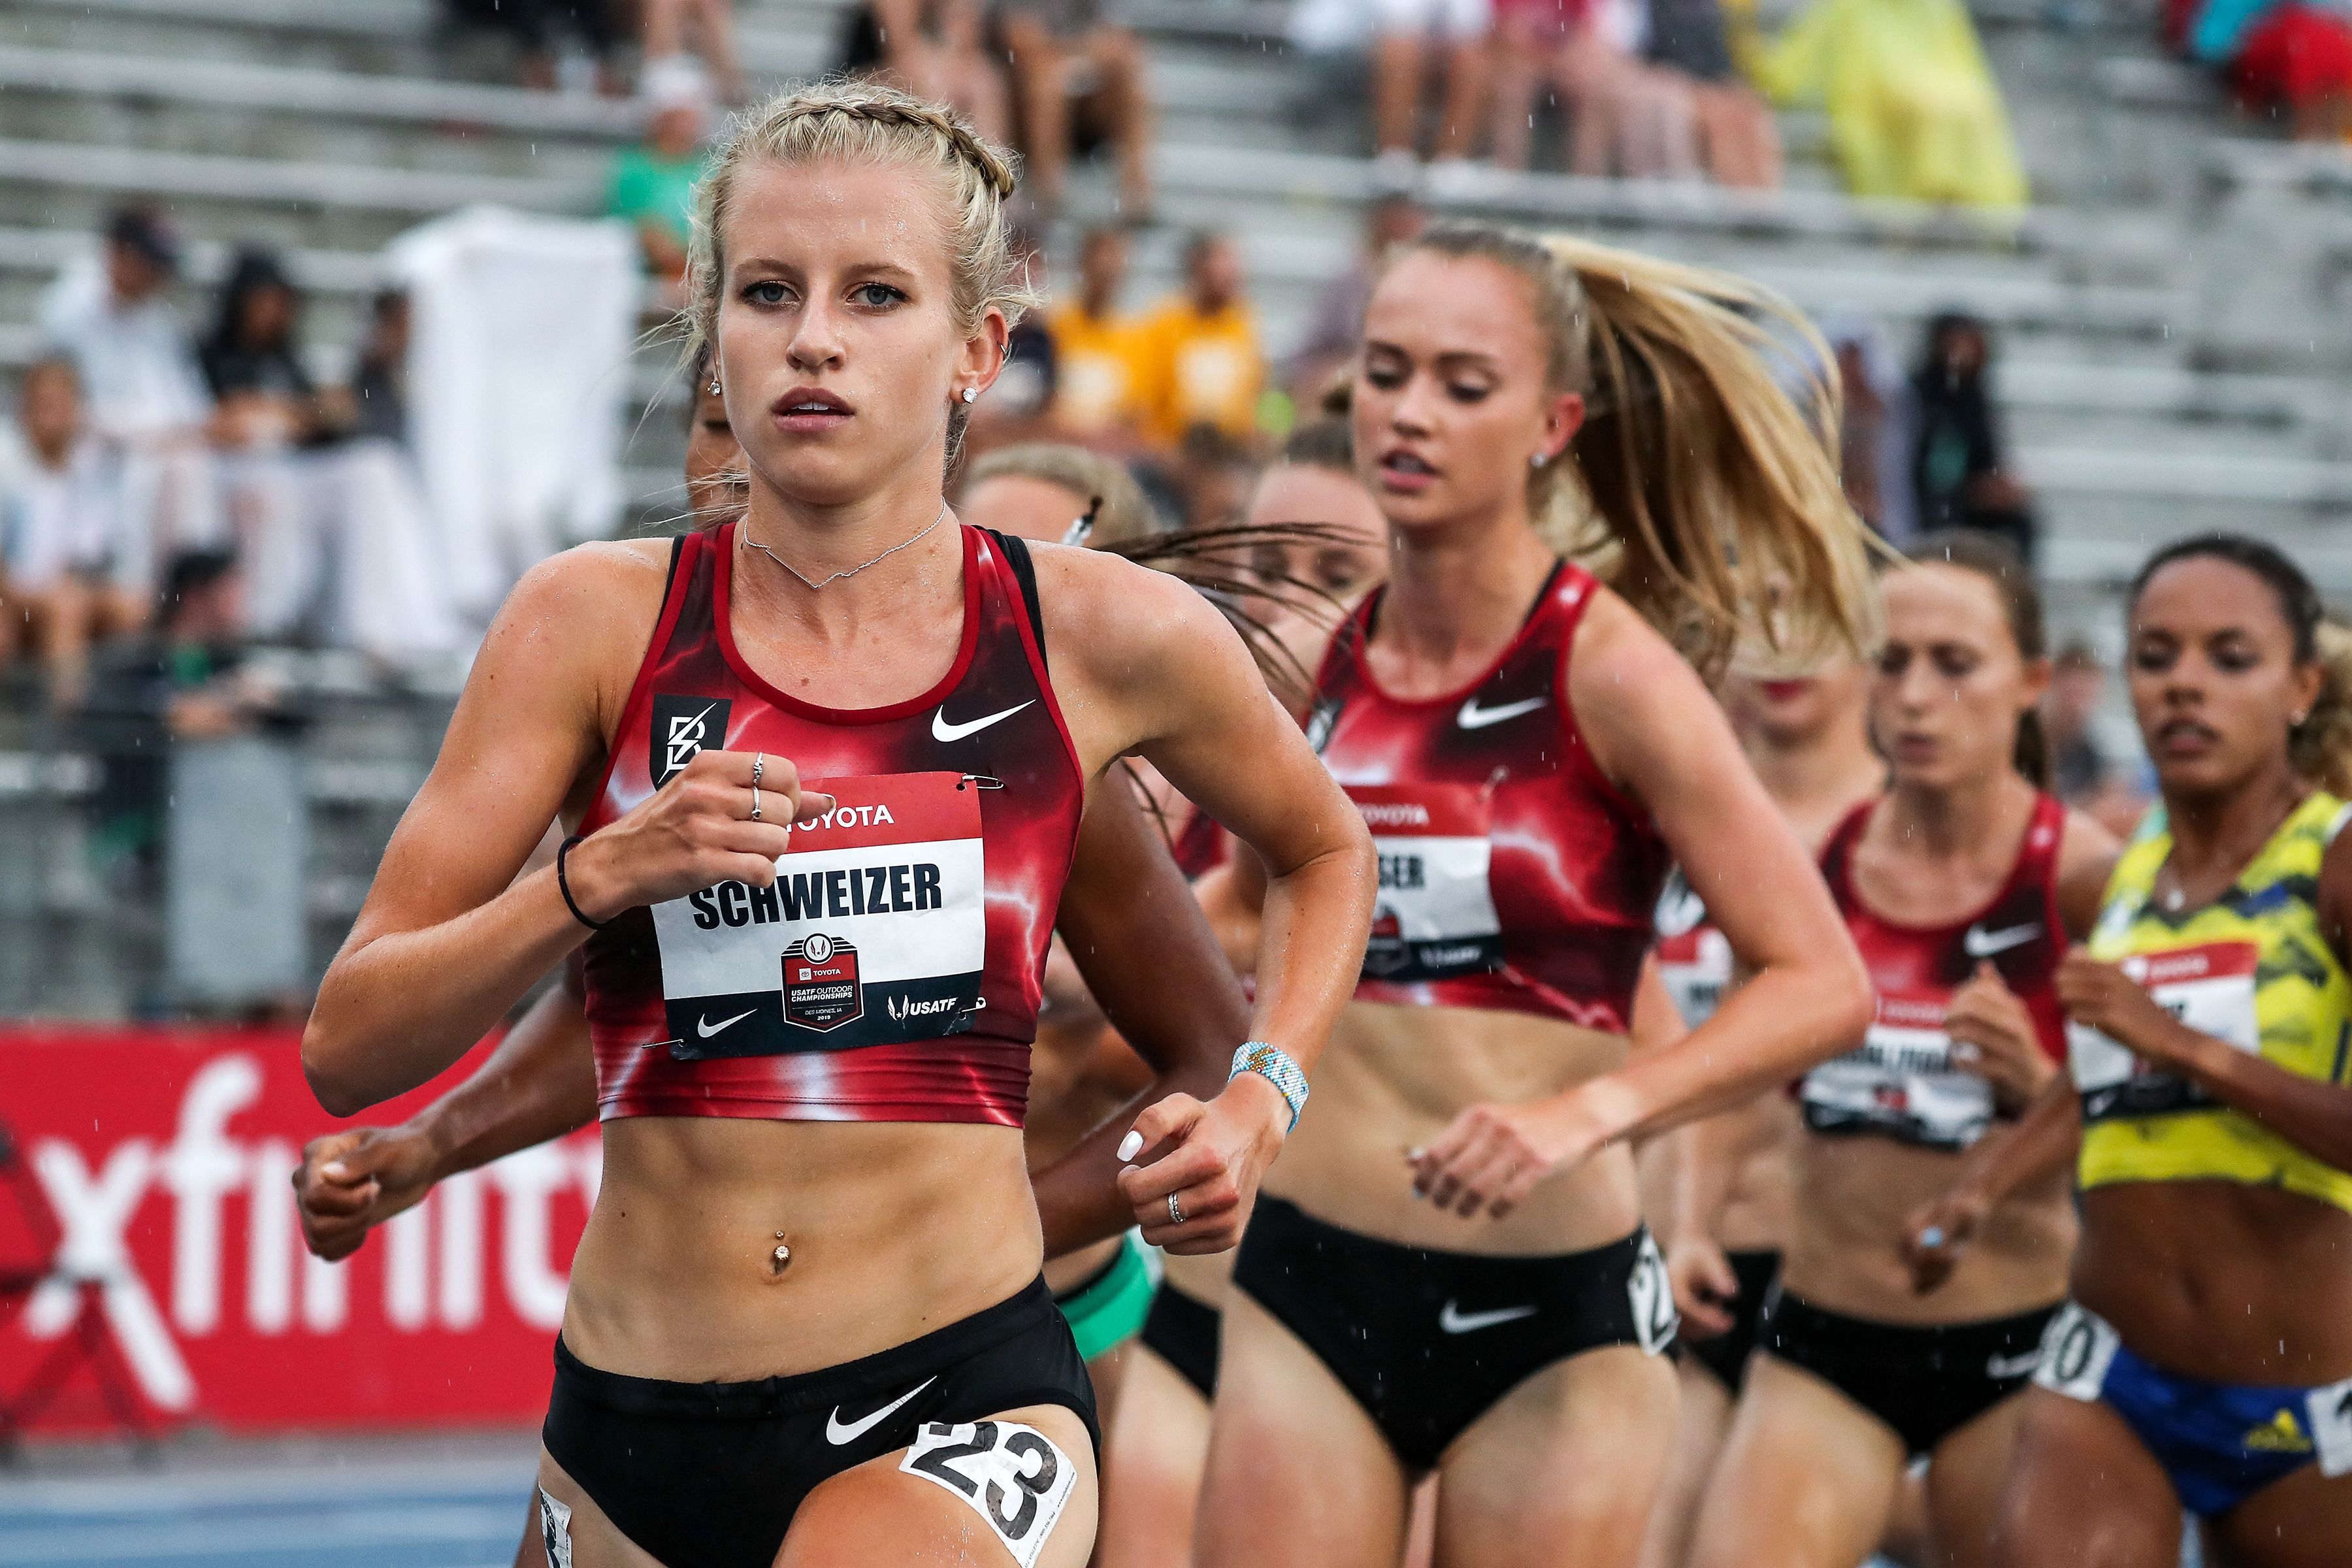 Karissa Schweizer Swears By Old-School Spaghetti and Meatballs Before Races